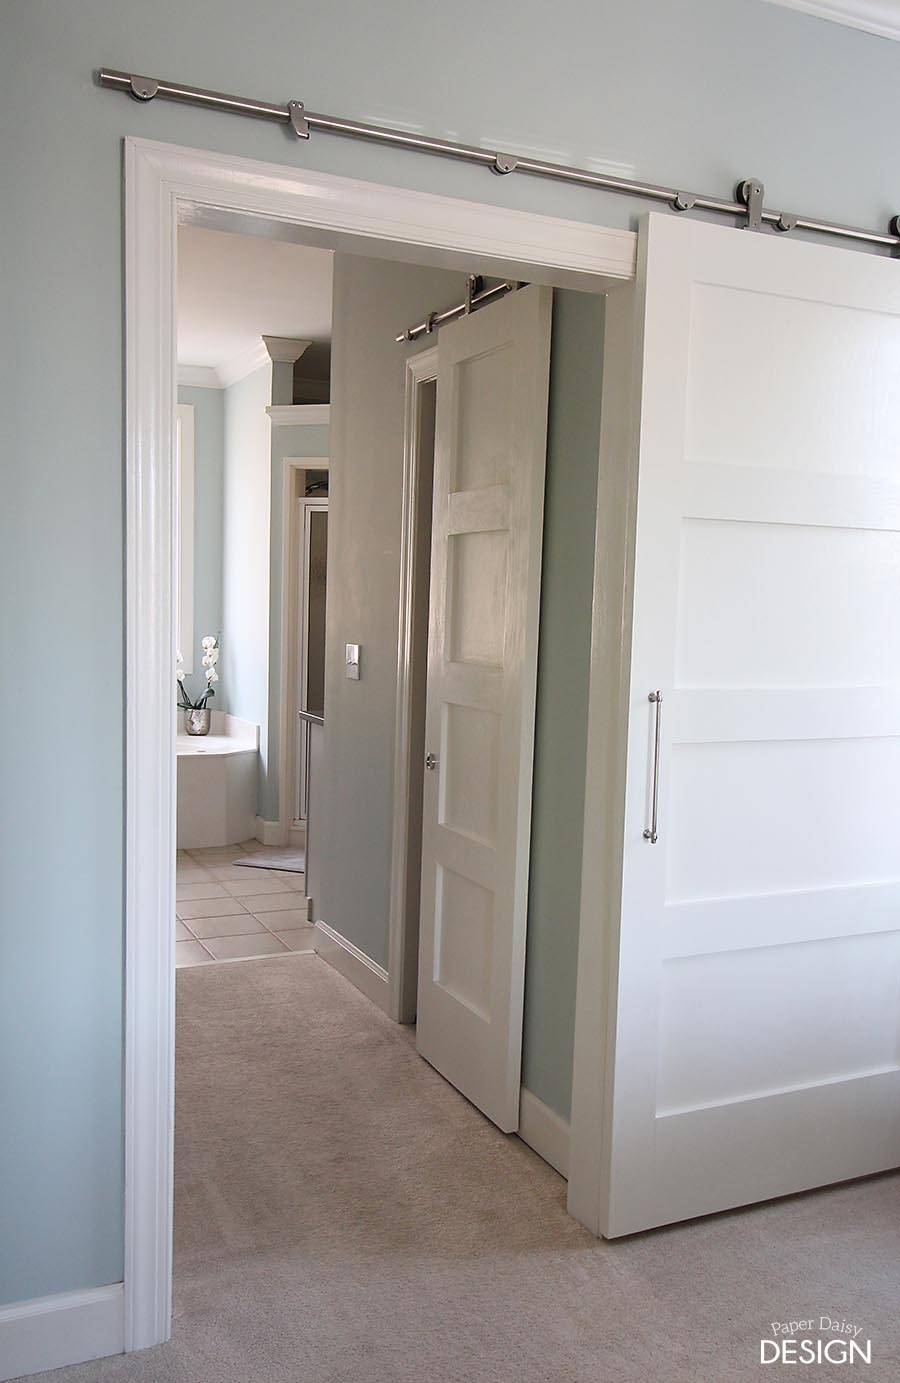 Barn Door For Bathroommodern barn doors an easy solution to awkward entries